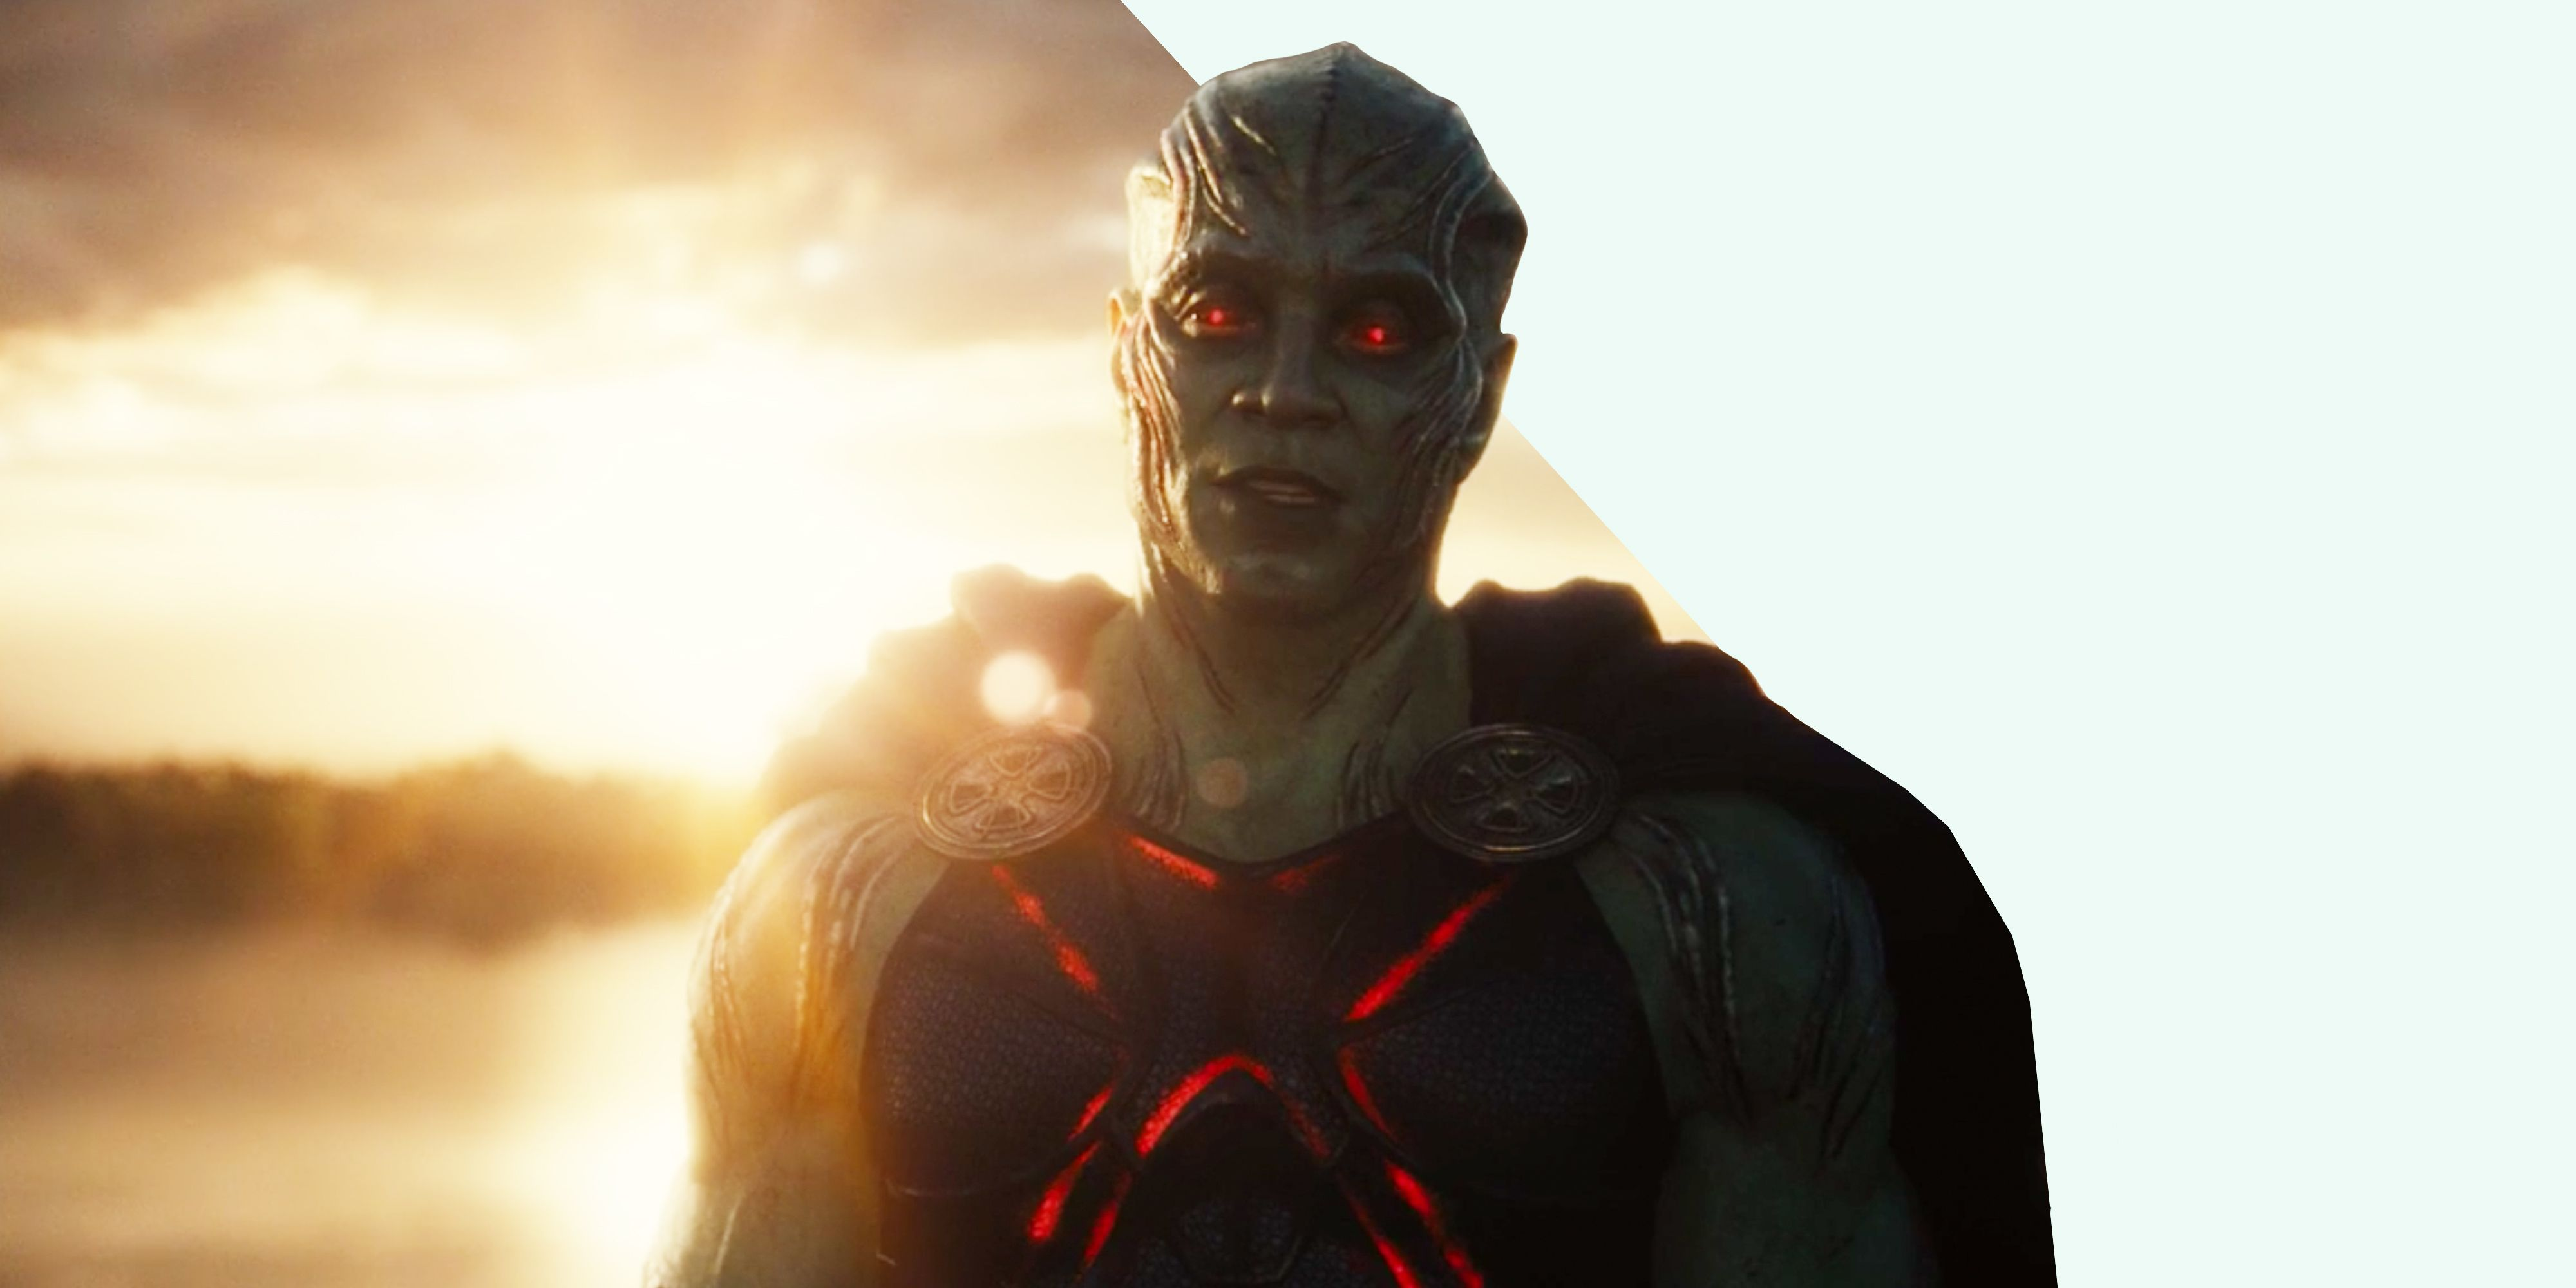 Who is Martian Manhunter in Zack Snyder's Justice League?